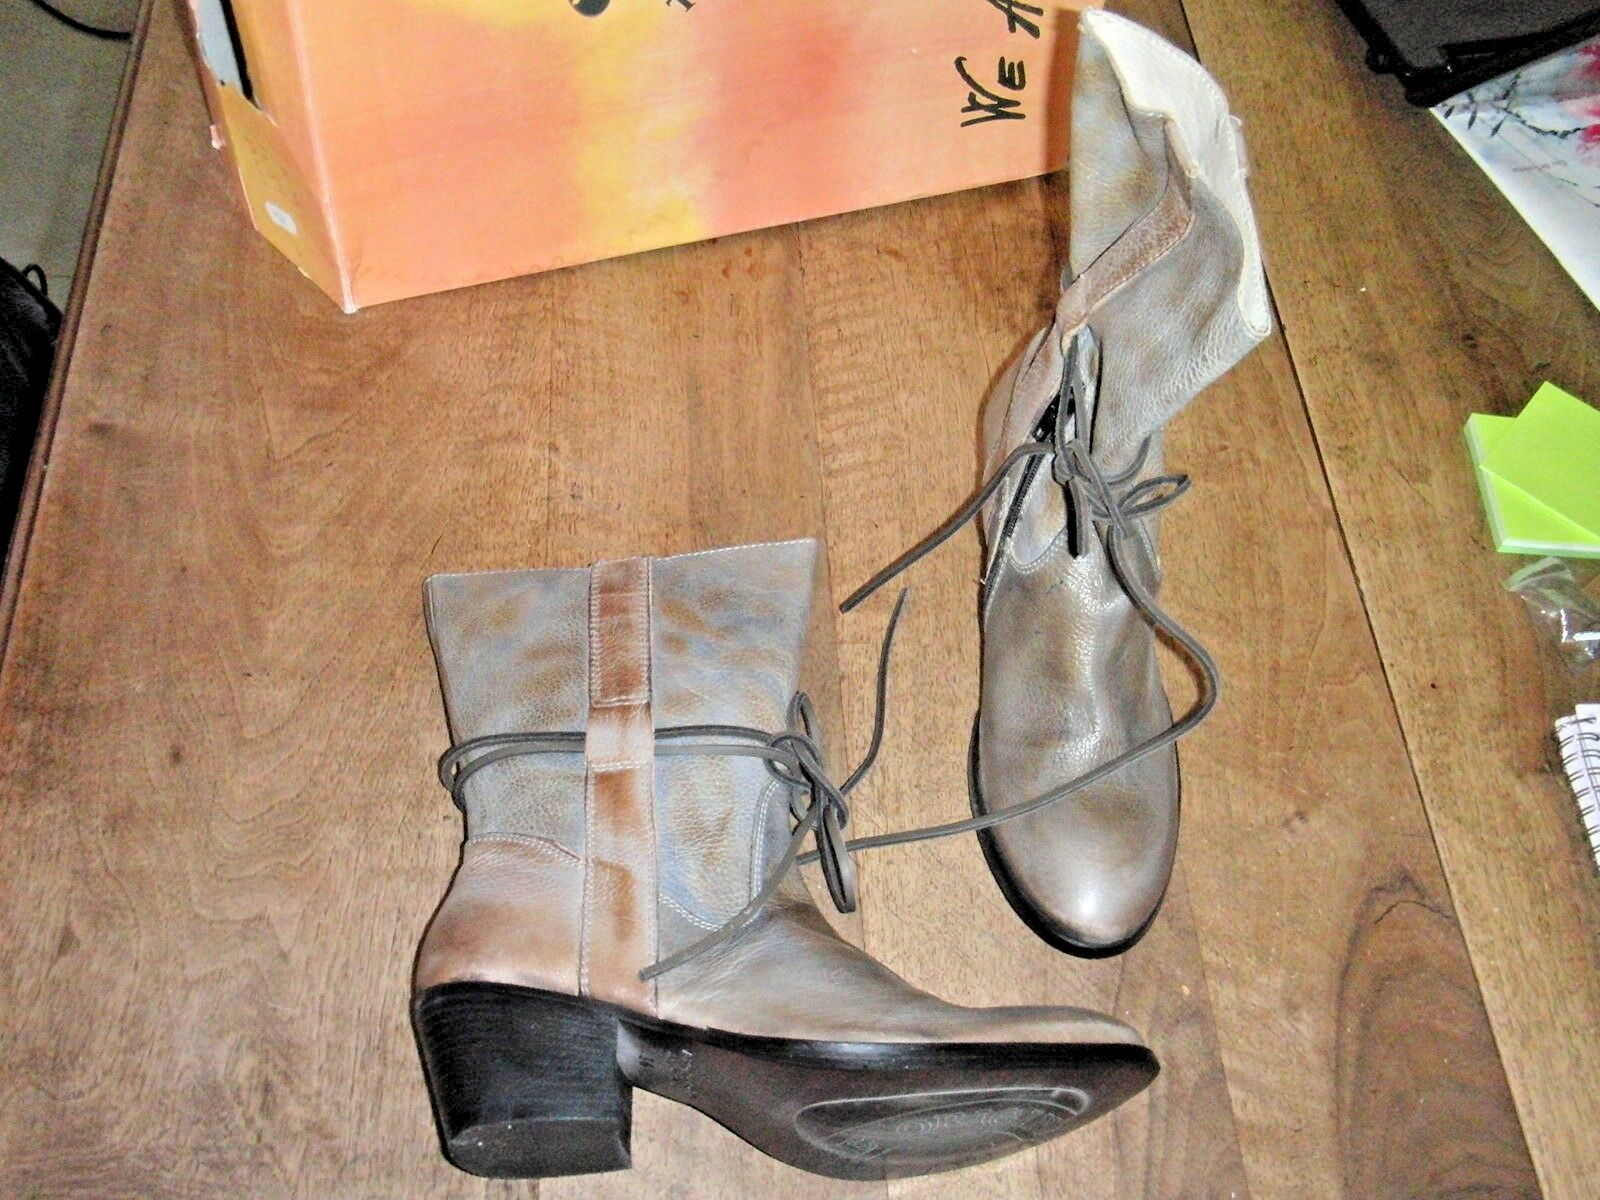 WE ARE Boots Bloom face lead NEW Heel Heel Heel 6cm Value 189E Sizes 36,37,40 36fe8c